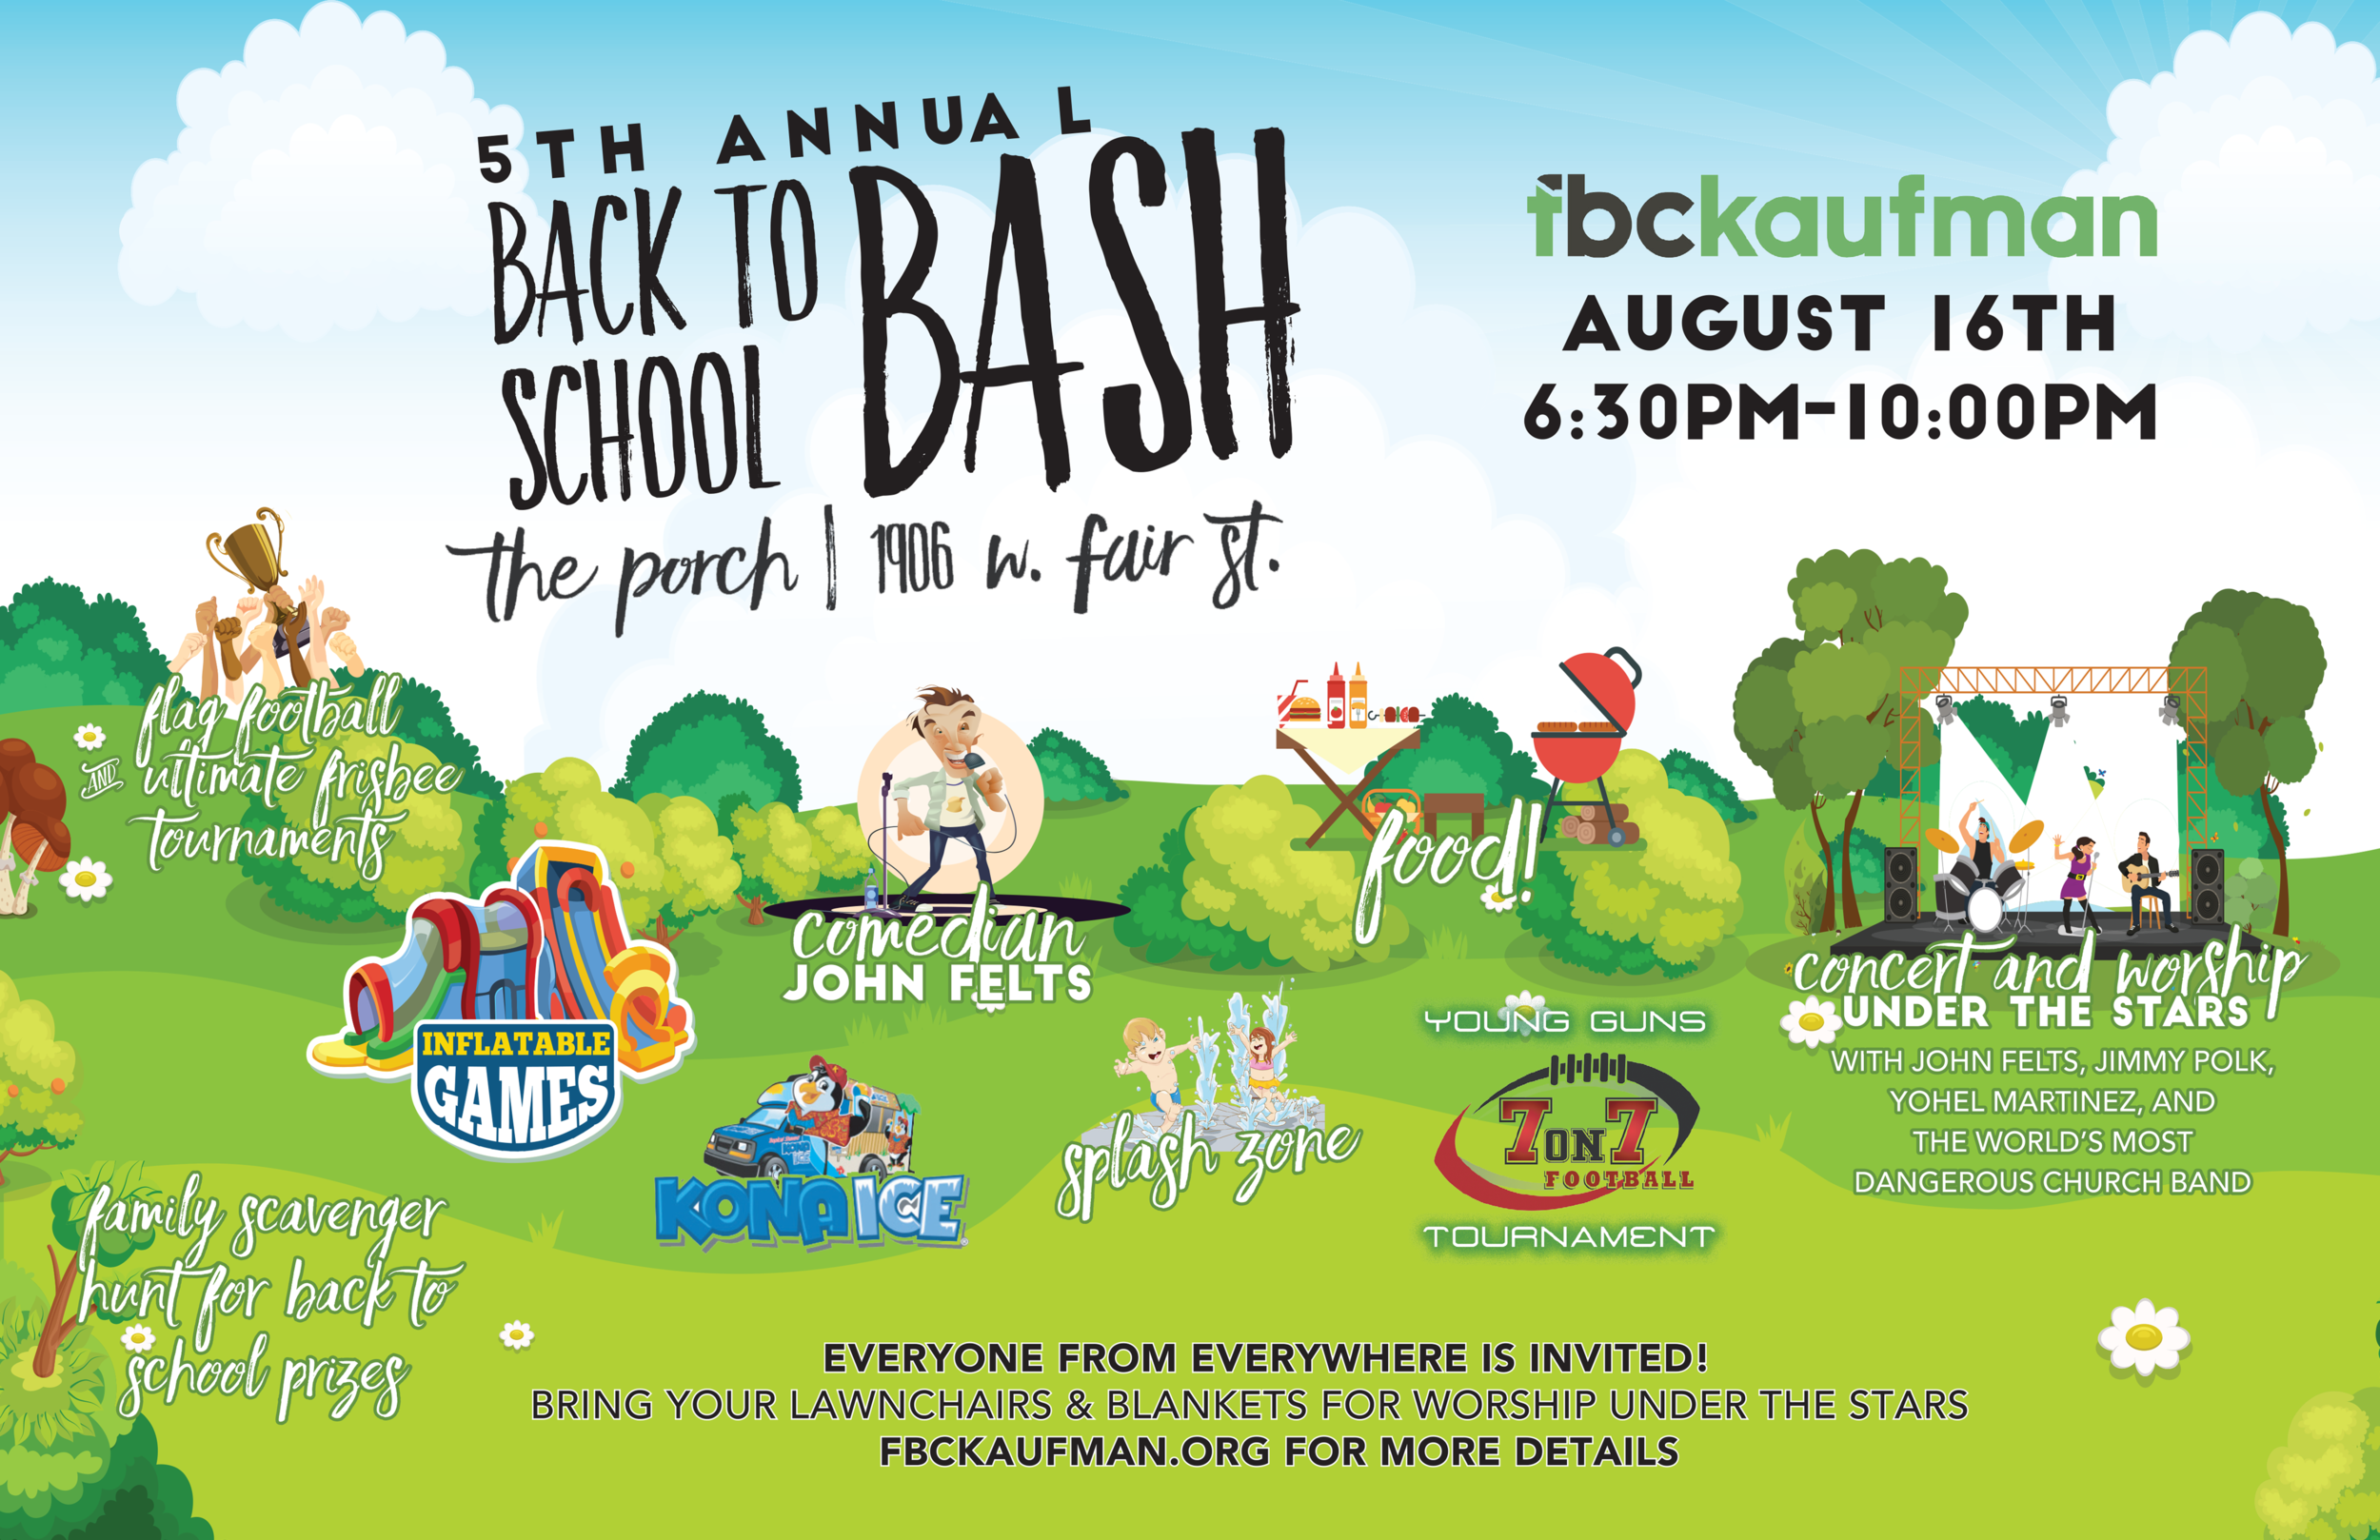 Come be a part of a growing Kaufman County tradition. The fifth annual Back-to-School Bash is sponsored by FBC Kaufman and we would like for you and your family to join the fun.  It's been an awesome summer, and just before it ends, we invite you to join us as we celebrate together one last time. This free event has something for most everyone. Food, games, sports, snow cones, music, comedy, and a free back school give-a-ways.Lots of your friends and neighbors from across central Kaufman County were at last years event and this is your invitation to come and join in the festivities.  Bring your beach chairs and blankets for this concert event at the High Meadow Stage.